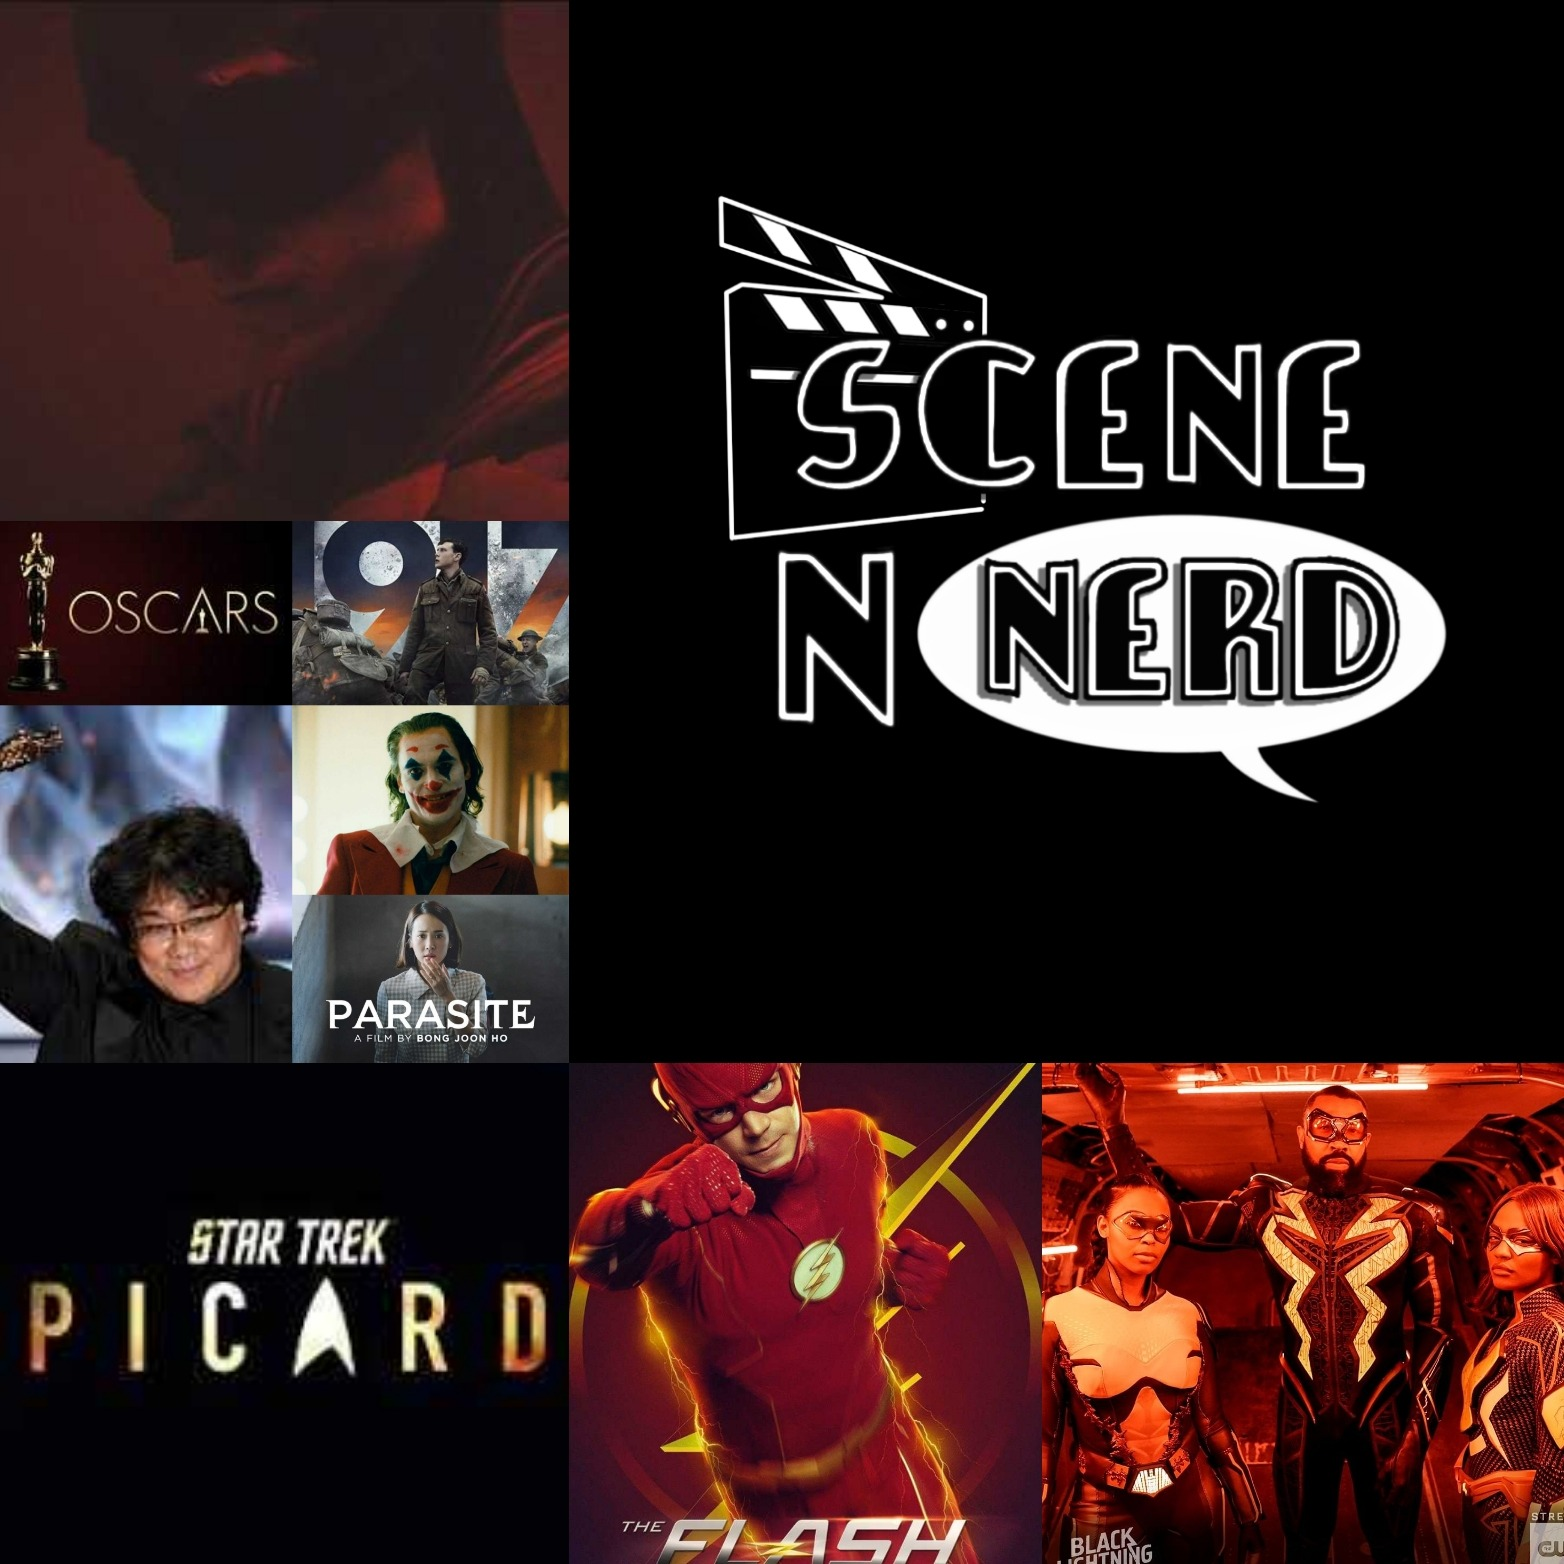 GVN Presents: Scene N Nerd - The Flash & 1917 who? Picard & Parasite Sweeps the Oscars